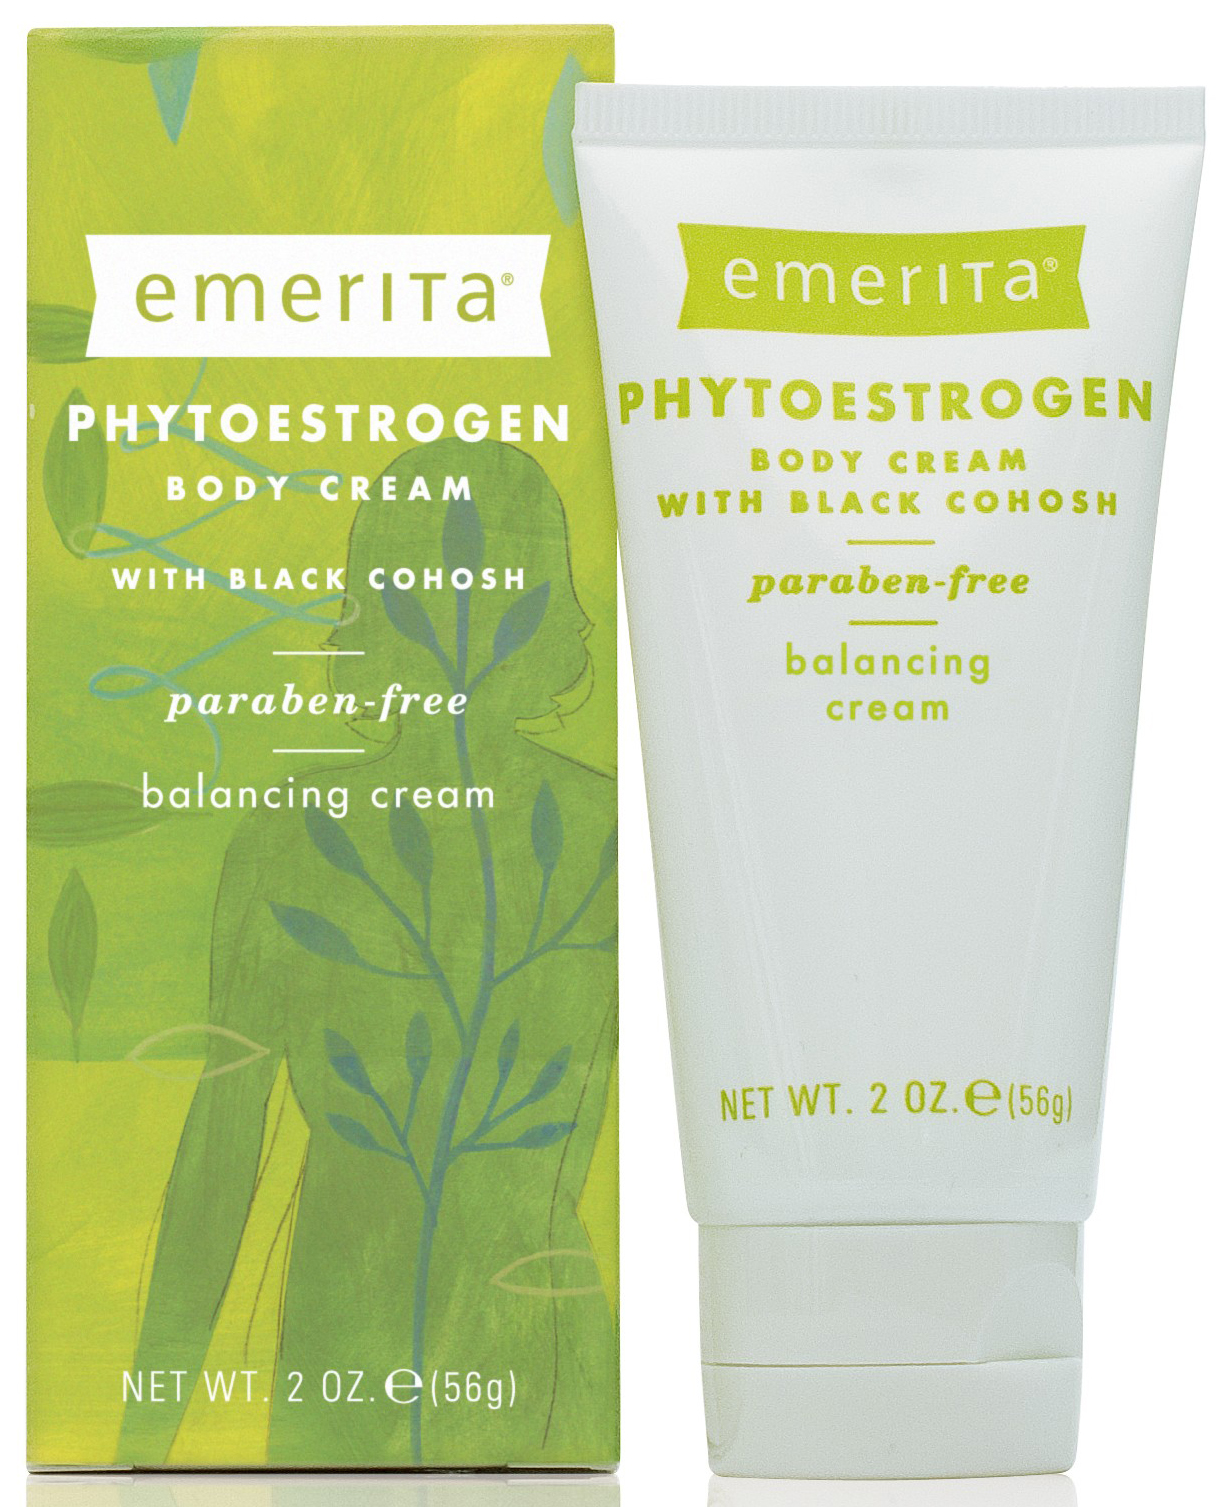 Emerita Phytoestrogen Cream 2 oz